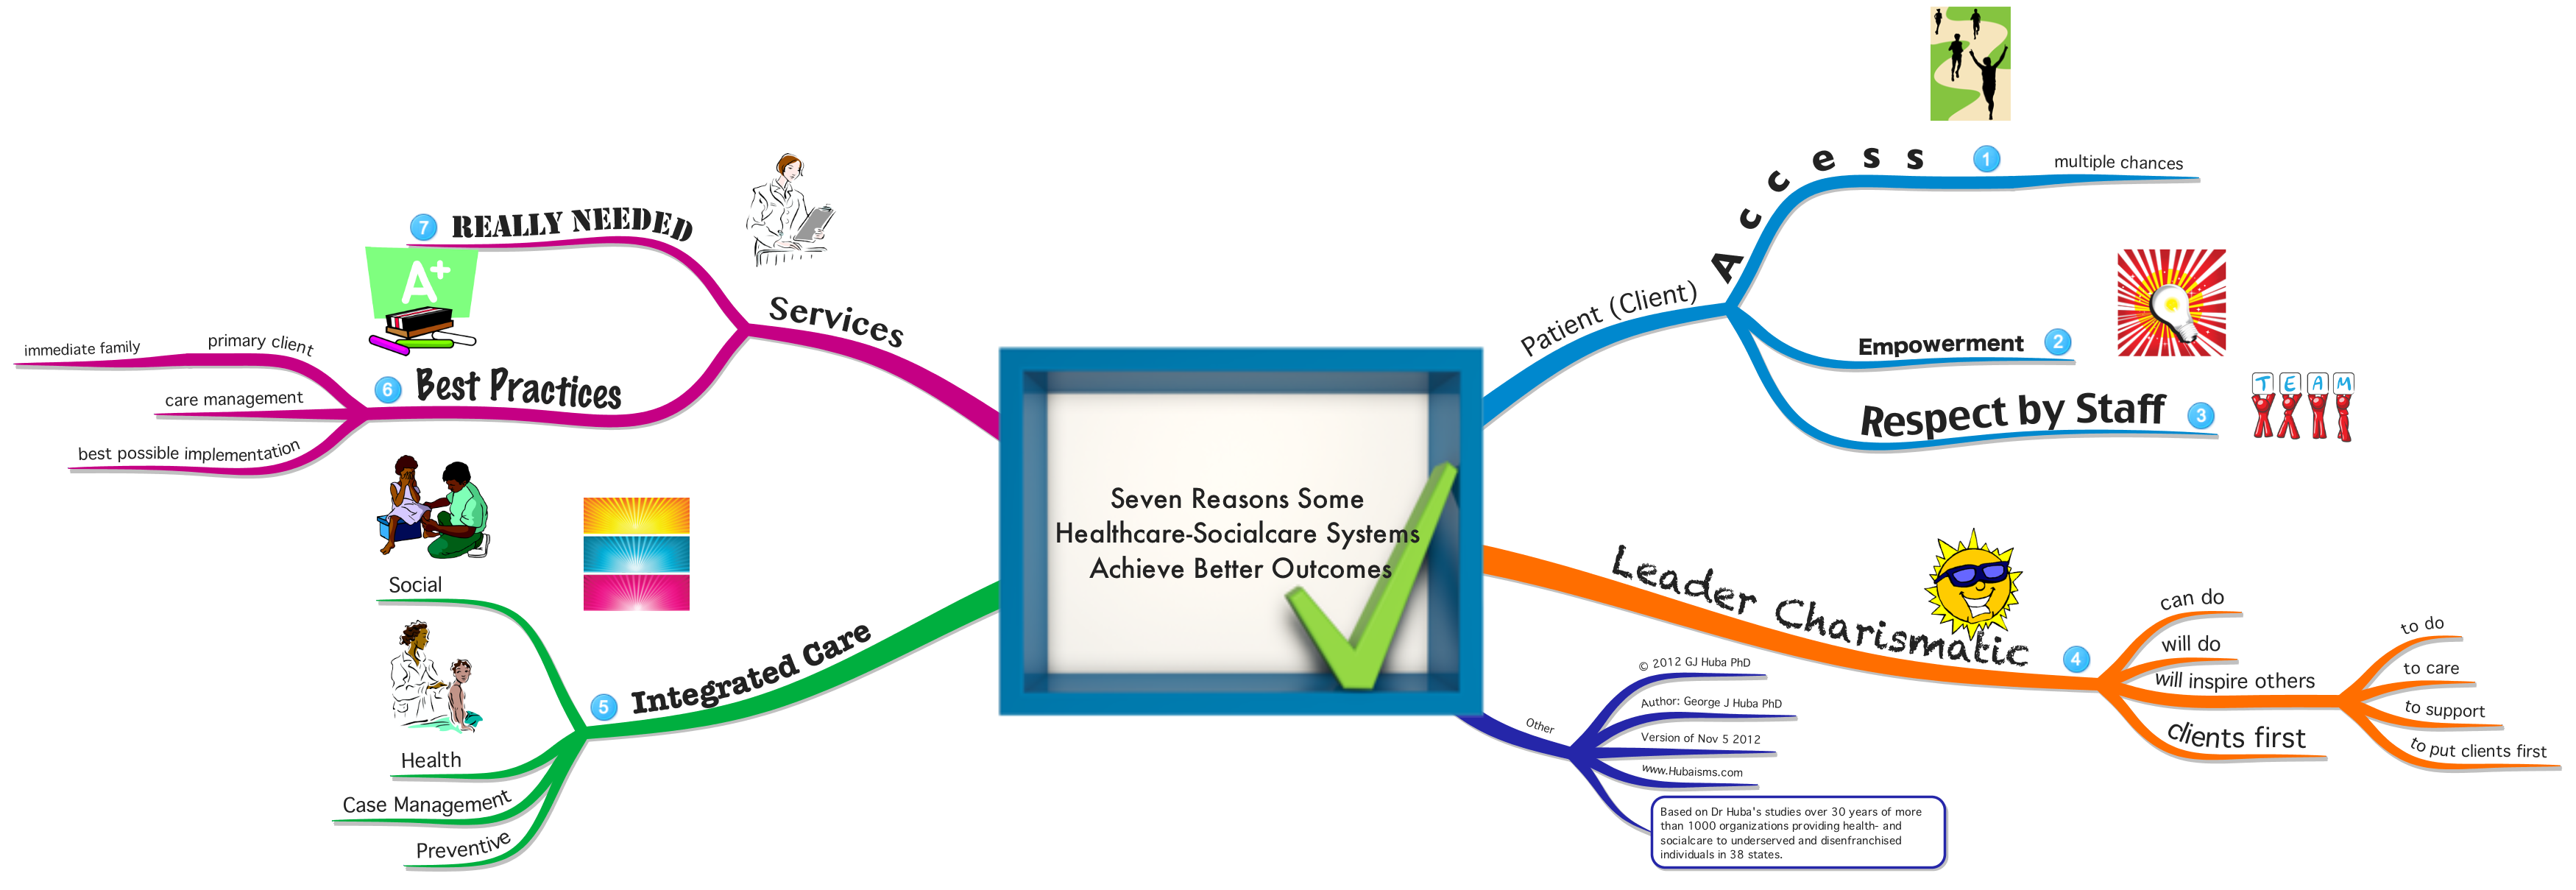 leadership in health care system Health care/system redesign involves making systematic changes to primary care practices and health systems to improve the quality, efficiency, and effectiveness of.